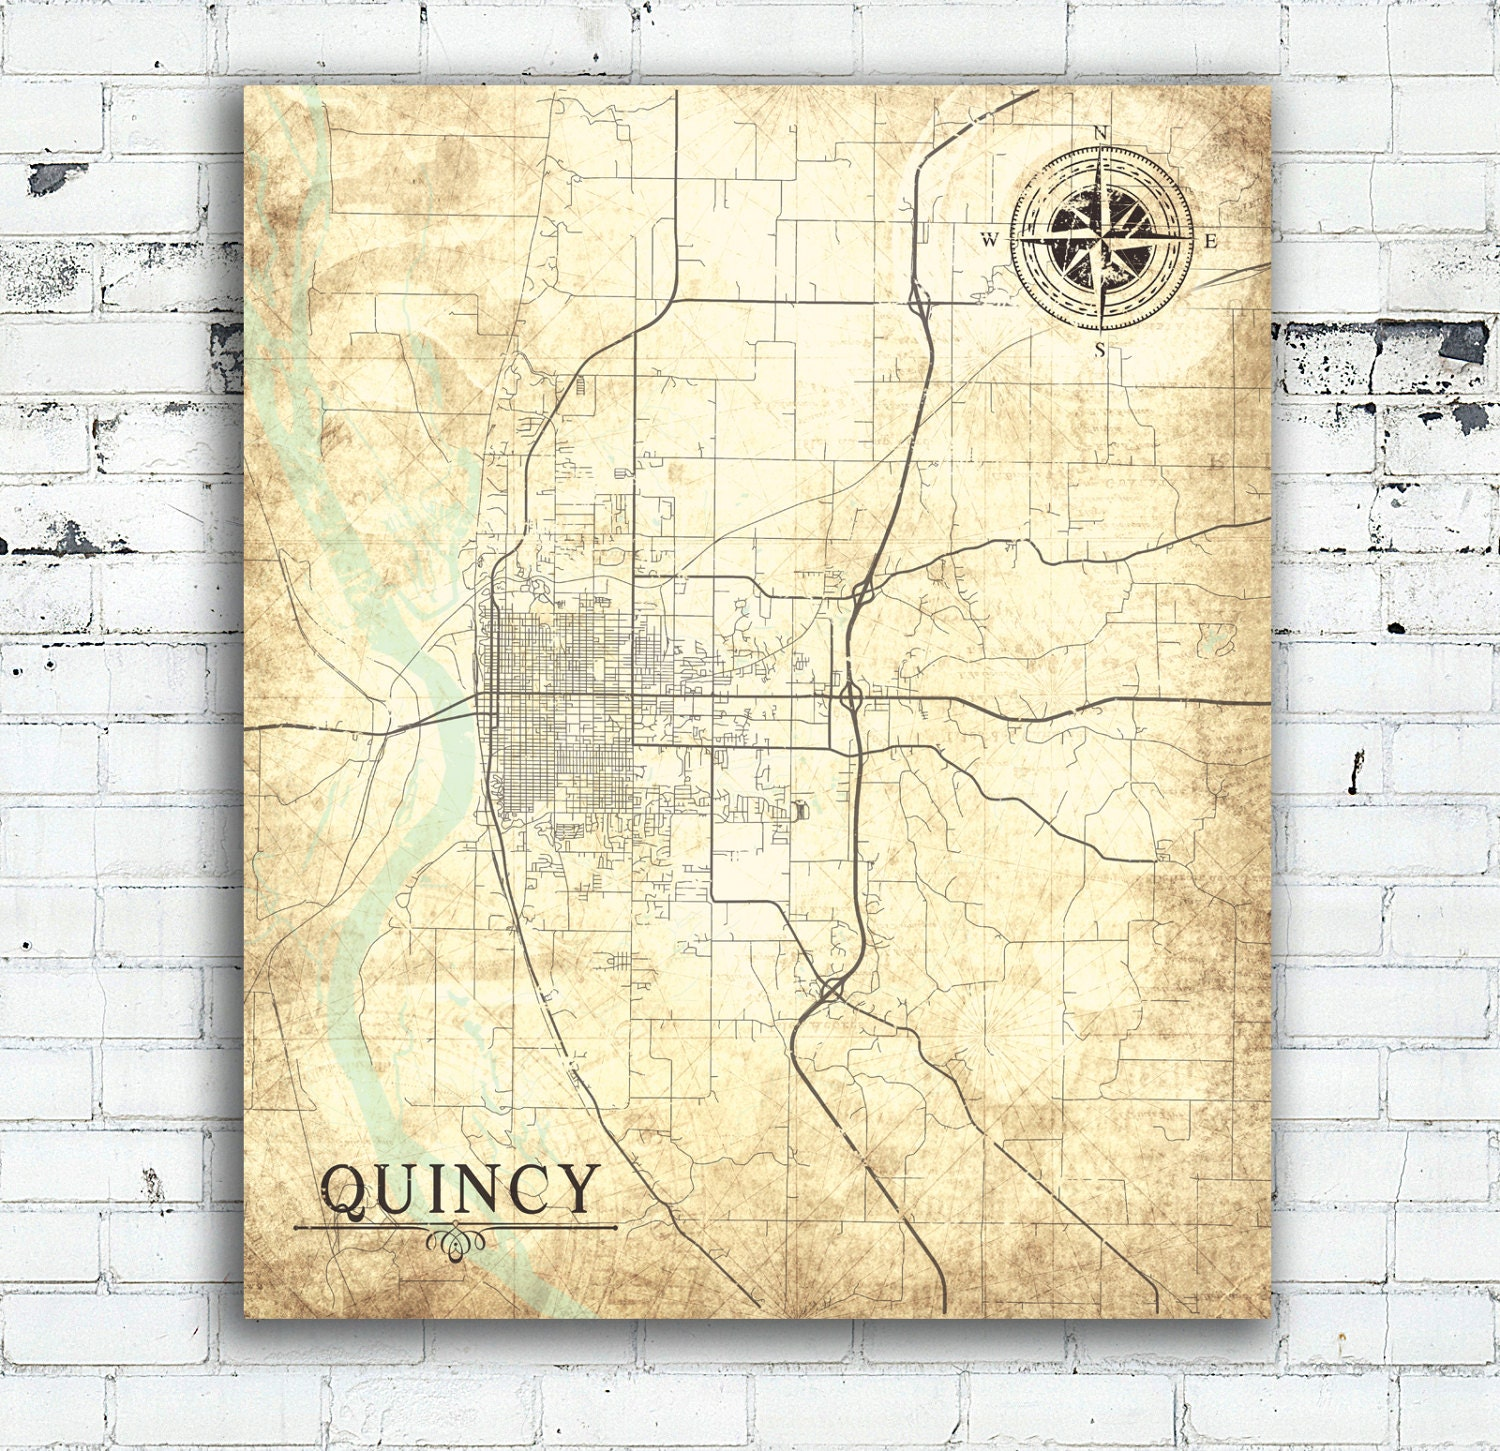 QUINCY IL Canvas Print IL Illinois Town City Vintage map ... on city of quincy map, quincy fl map, quincy il attractions, great lakes illinois street map, quincy il ward map, quincy il history, quincy il architecture, quincy il zip code, quincy il schools, quincy mi map, quincy il bars, quincy street map, quincy il hotels, adams county quincy illinois map, quincy il weather, quincy il parks, quincy il city flag, quincy il restaurants, quincy il shopping, quincy il city hall,